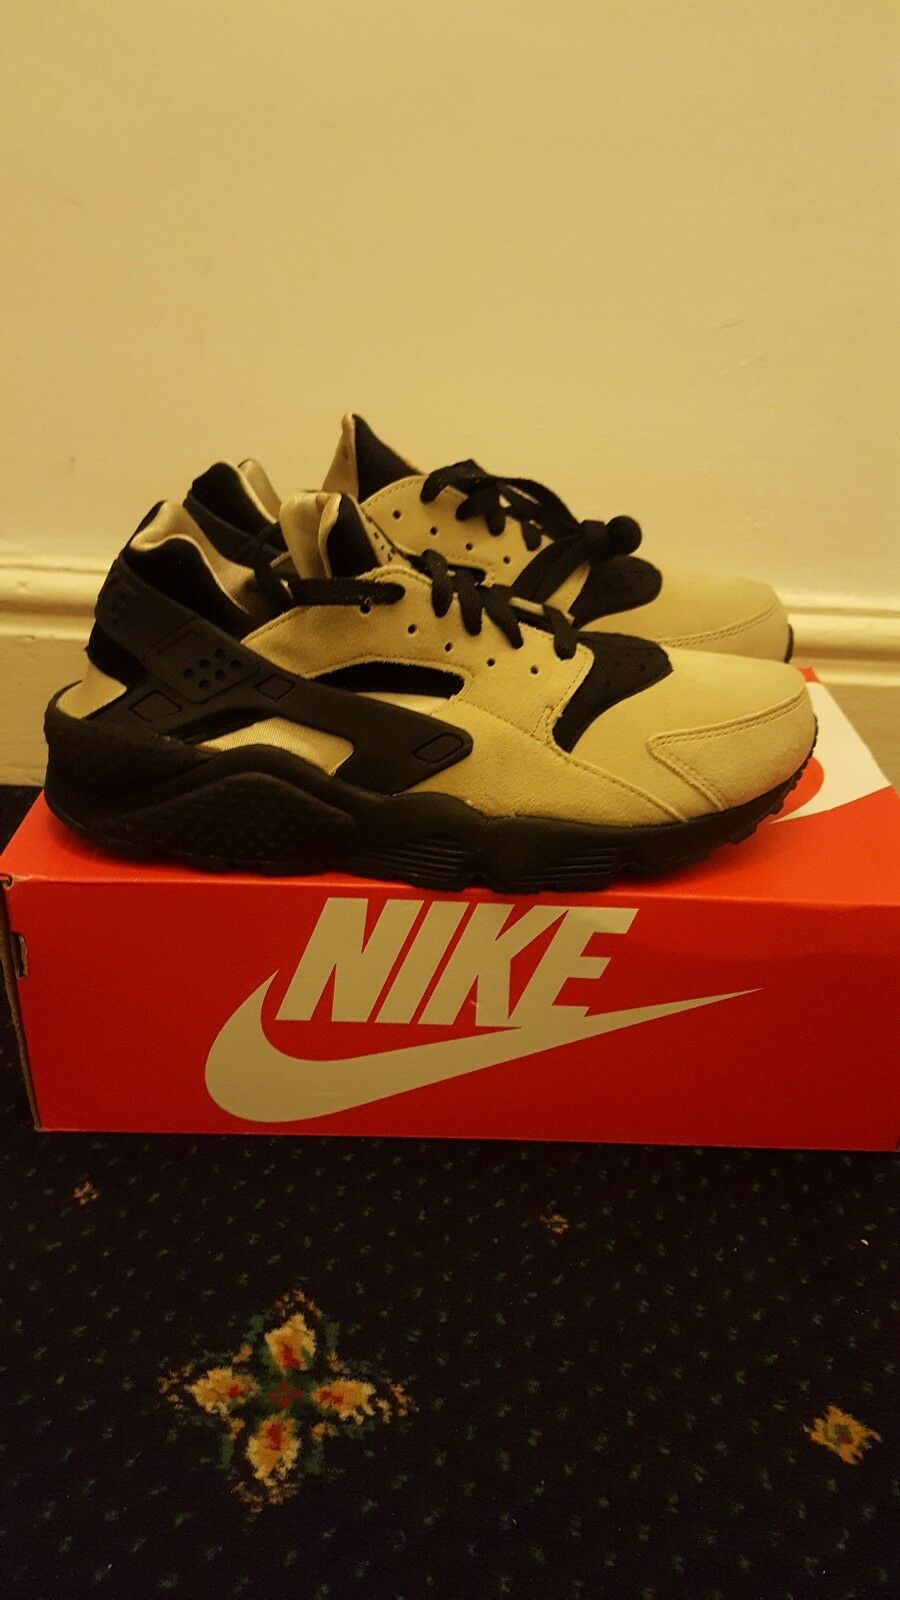 Nike Air Huarache Flint UK 7.5 US 8.5 8.5 8.5 BNWB 01191e